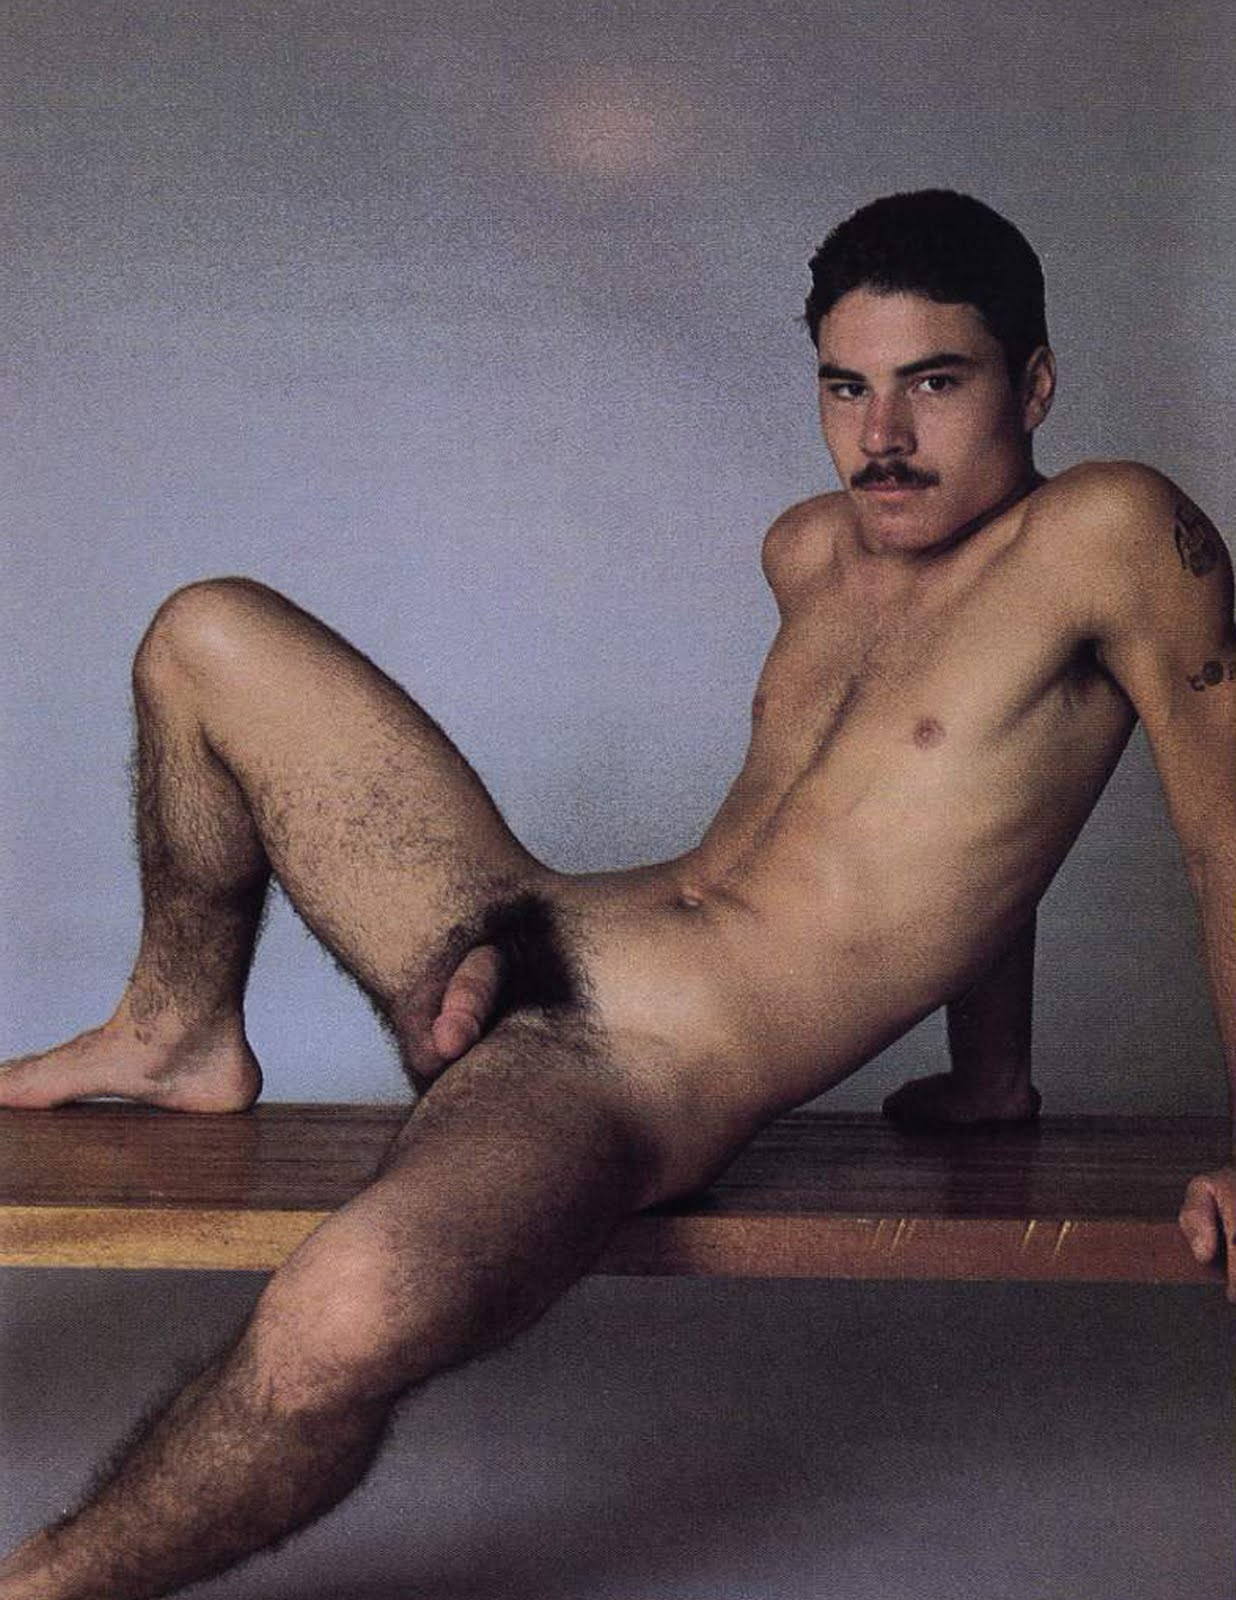 Brian Diaz vintage gay hot daddy dude men porn